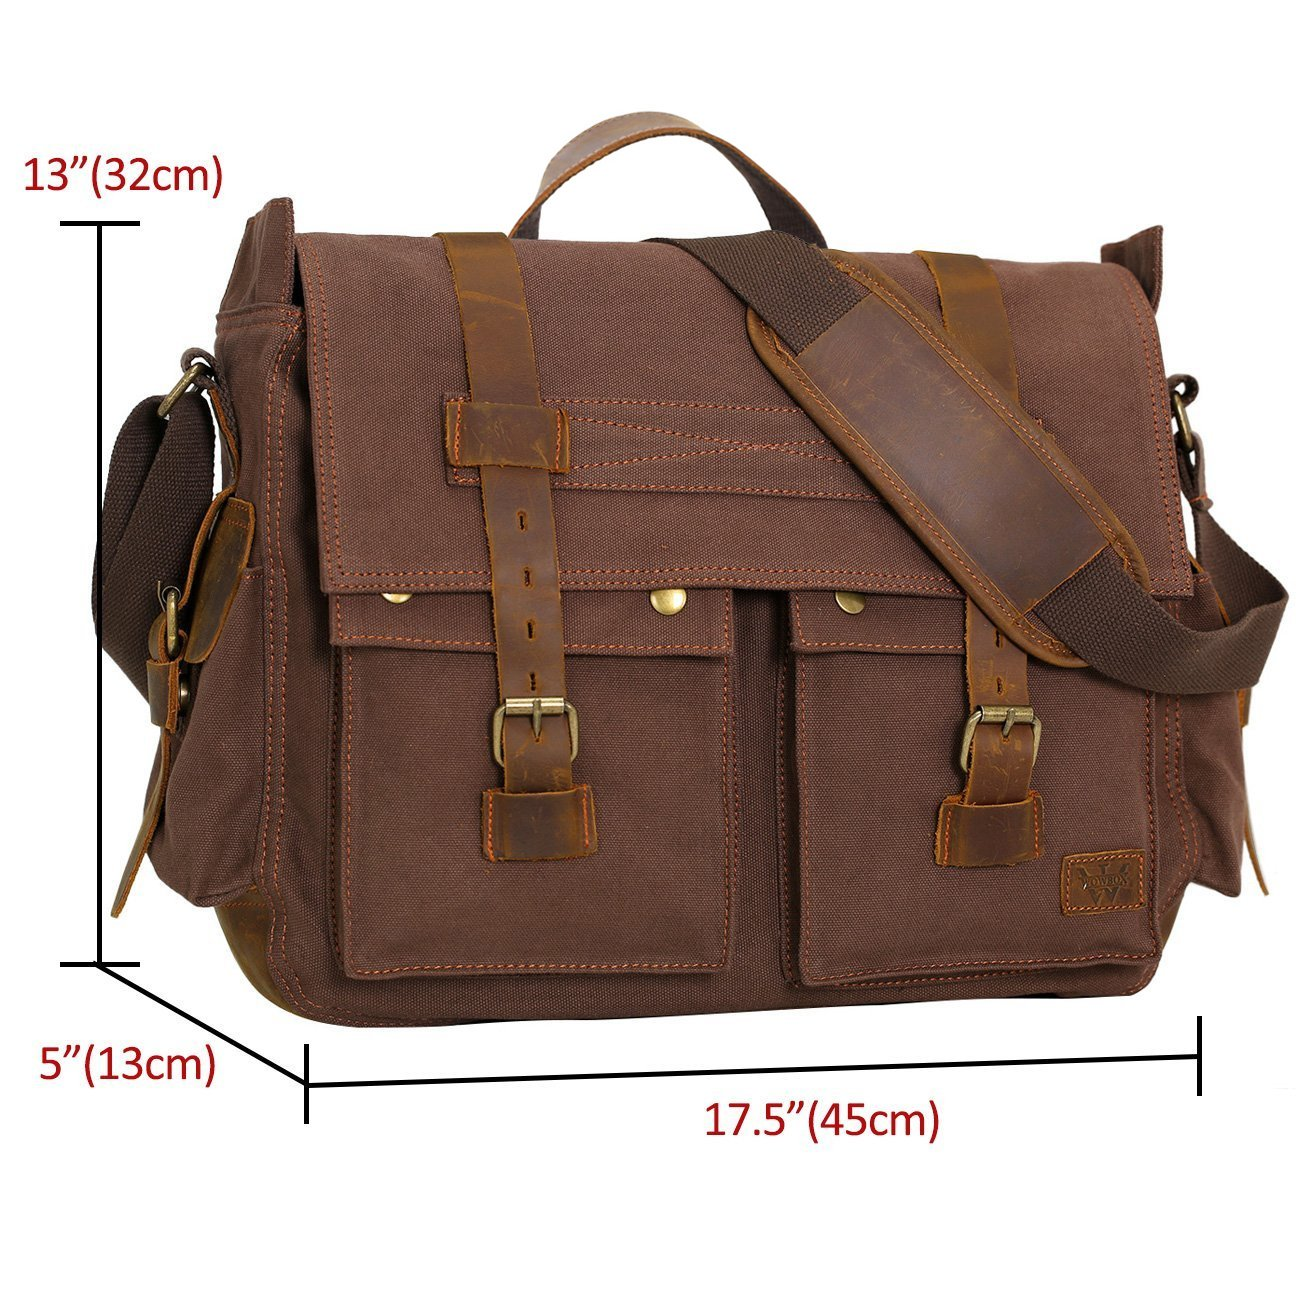 Amazon.com  Wowbox 17.3 Inch Men s Messenger Bag Vintage Canvas Leather  Satchel Laptop Bags Bookbag Working Bag for Men and Women Coffee  Computers    ... be4f002daa